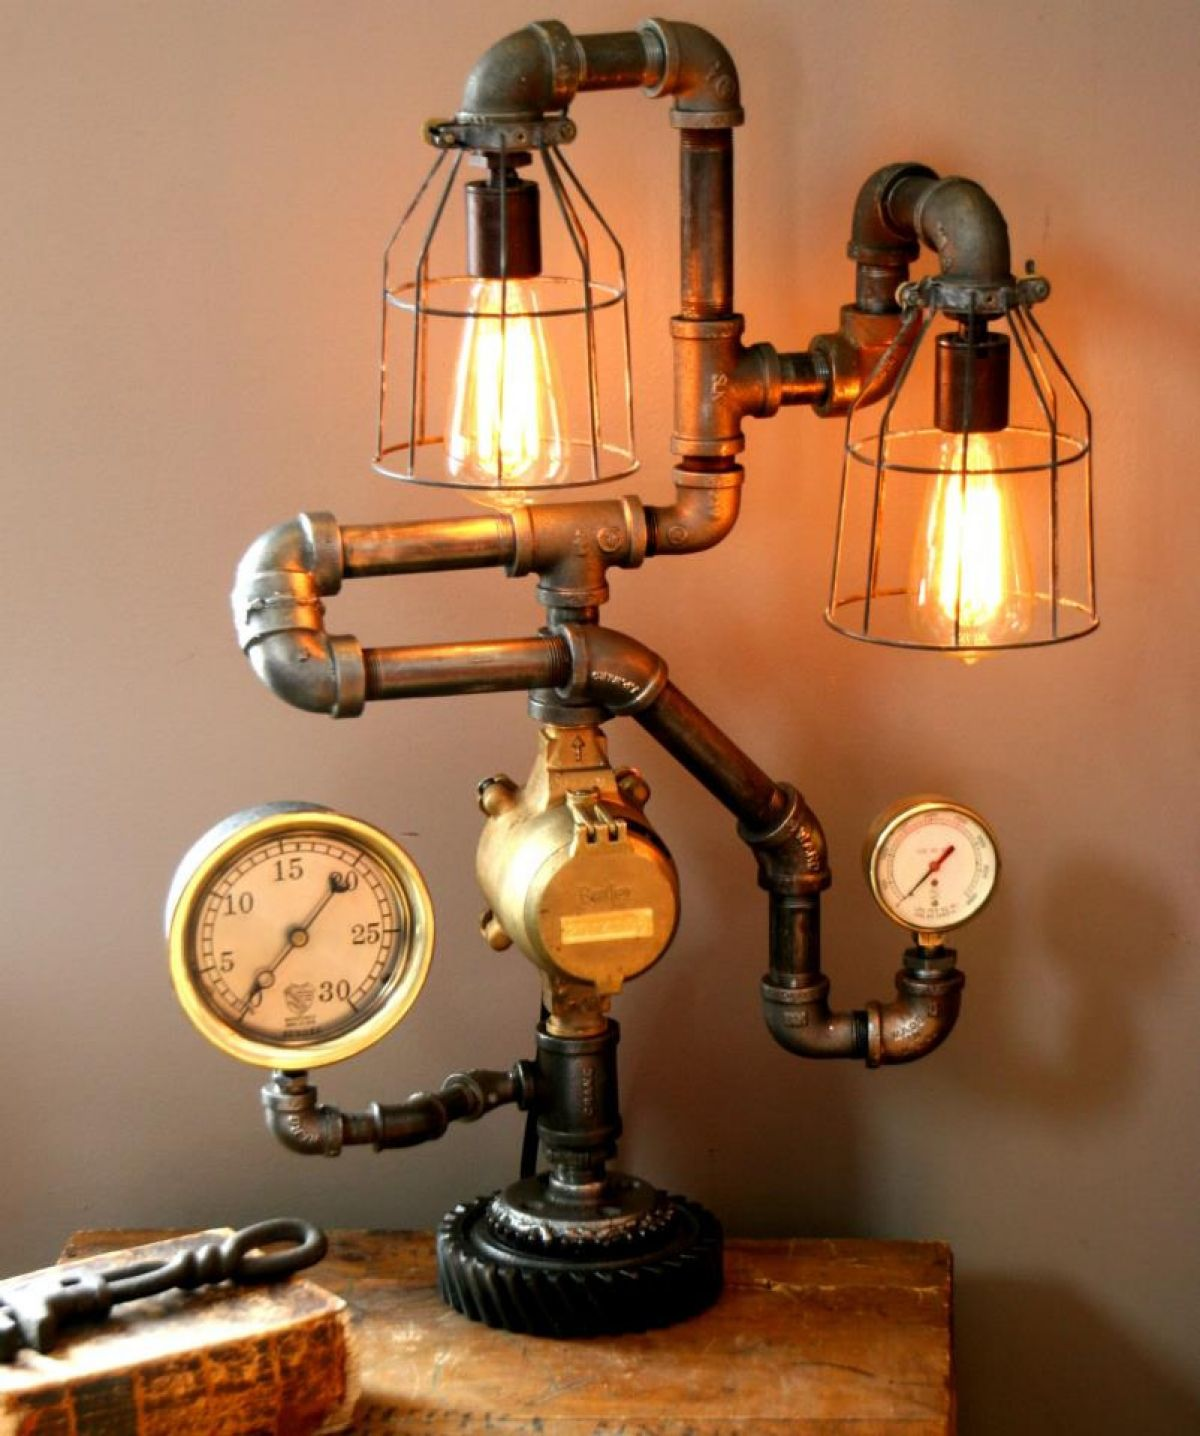 Steampunk Lamps 25 Ways To Add A Touch Of Vintage And